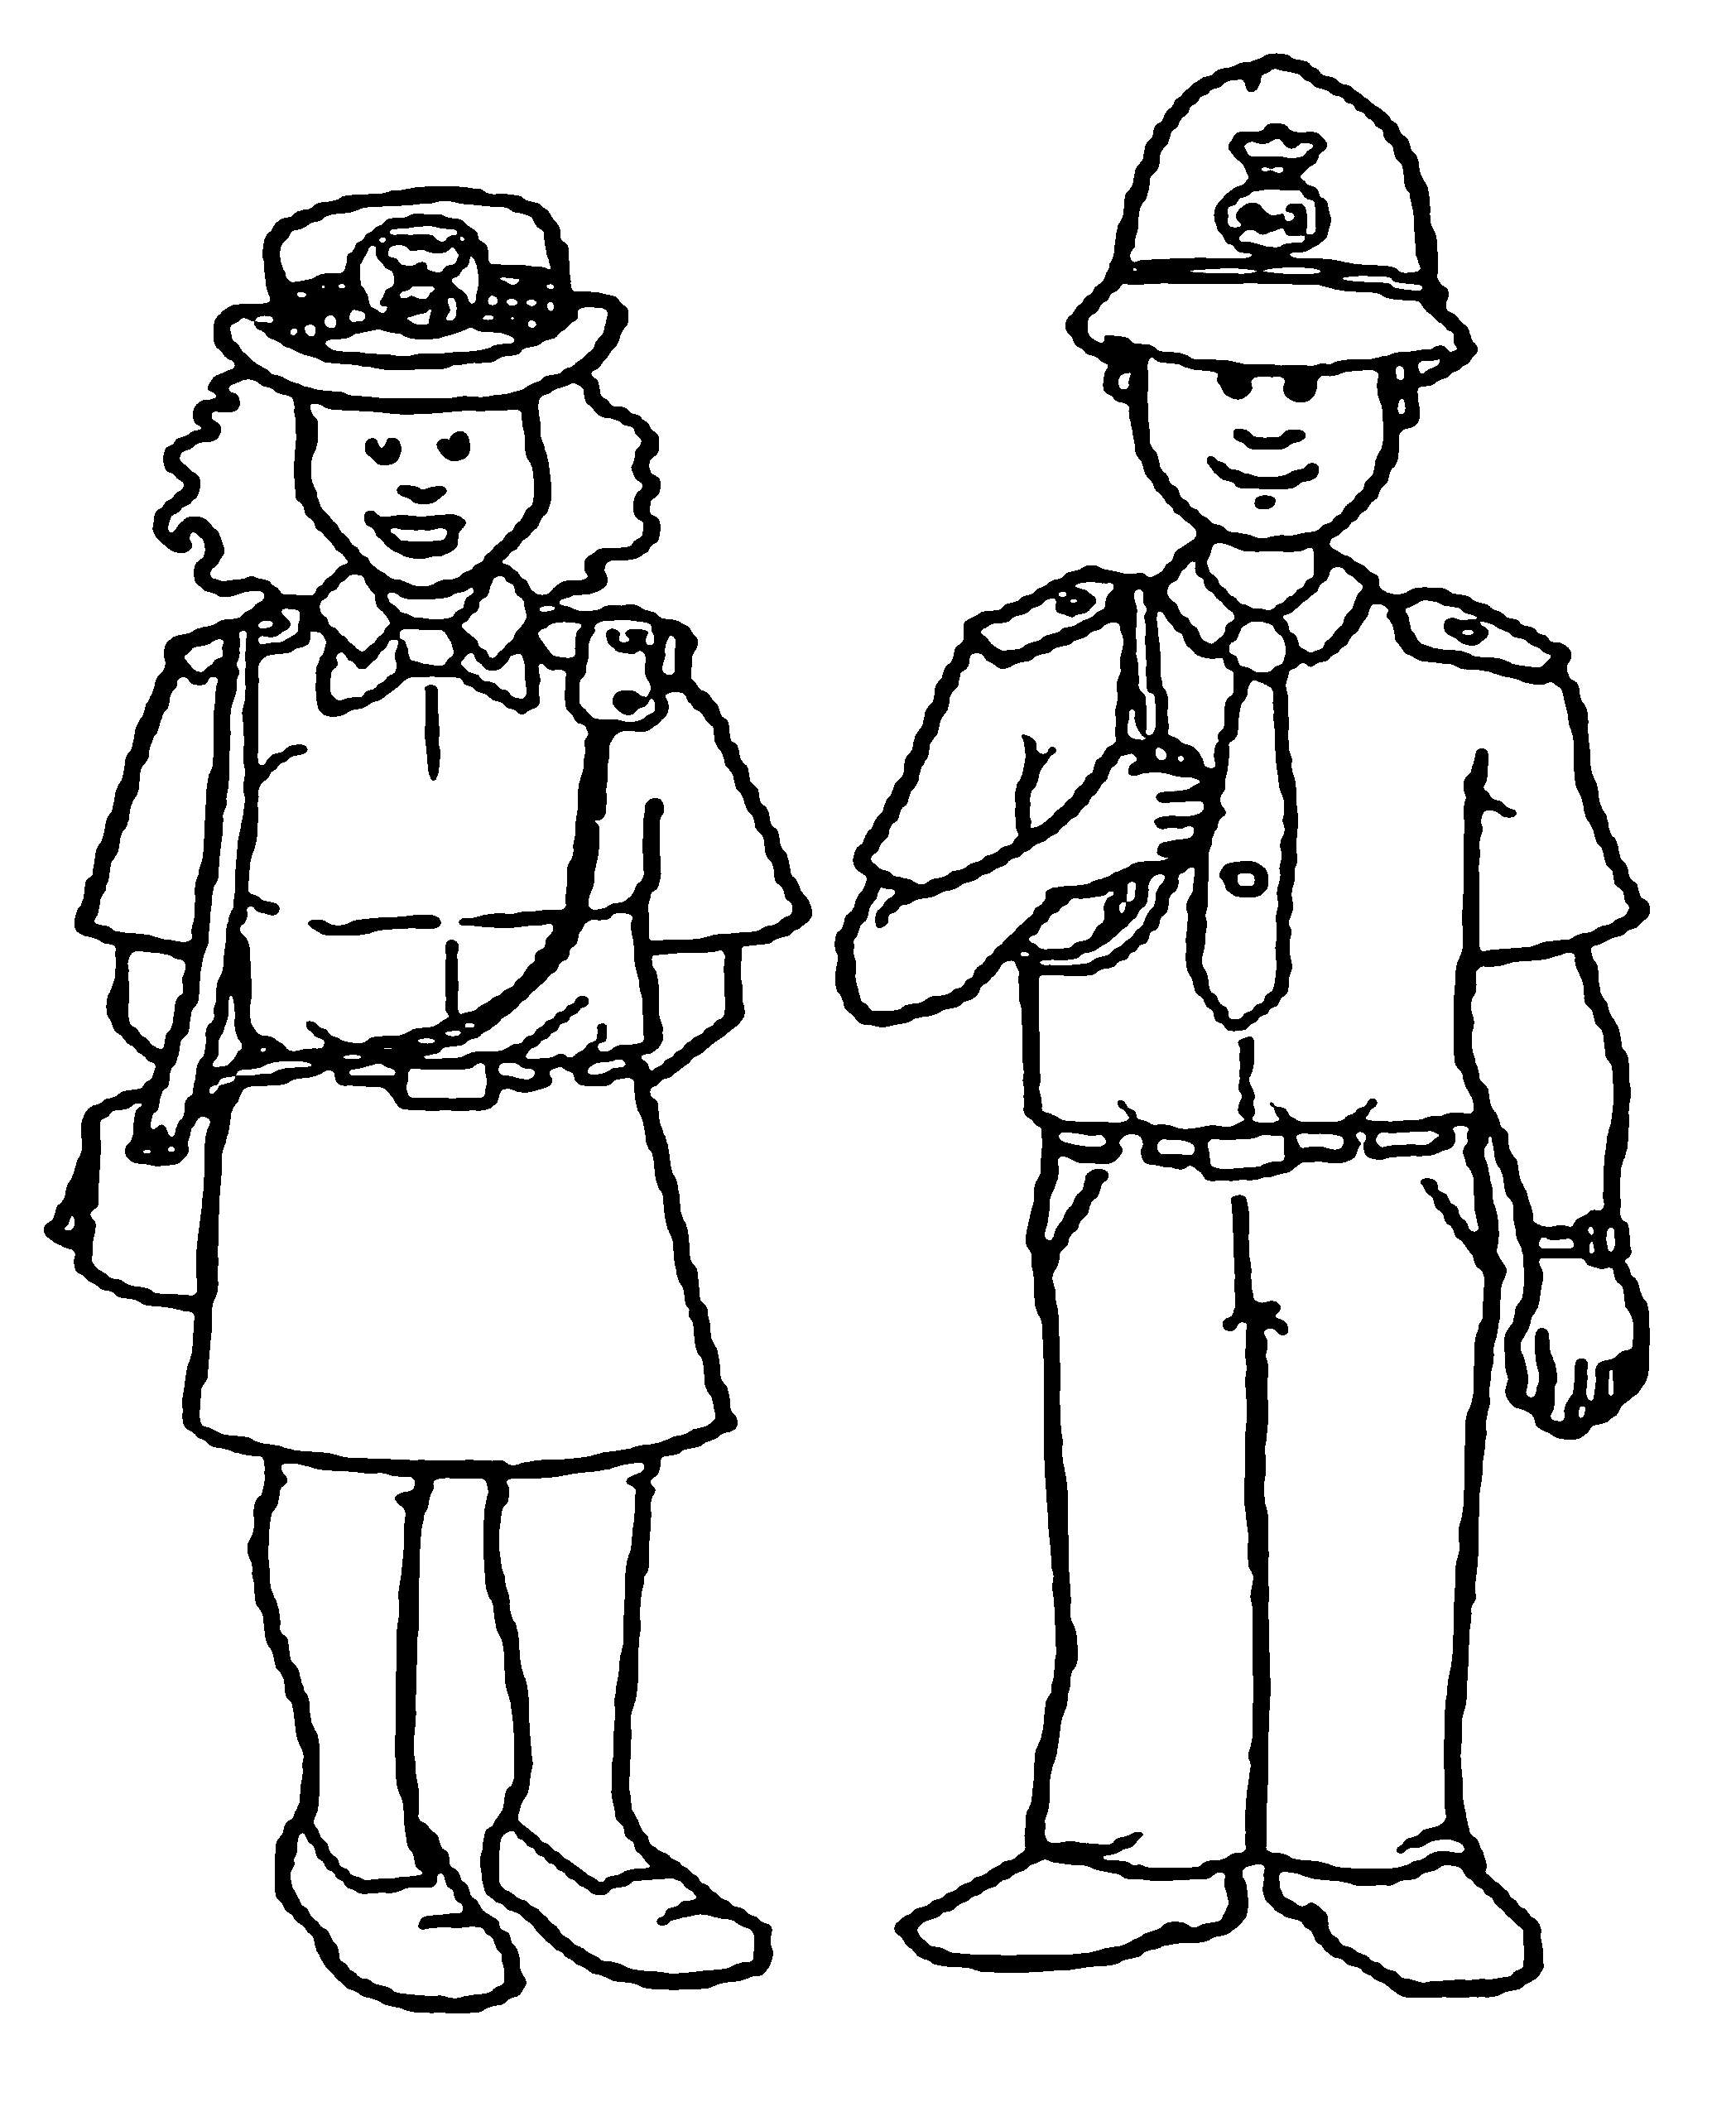 policeman coloring pages - photo#15